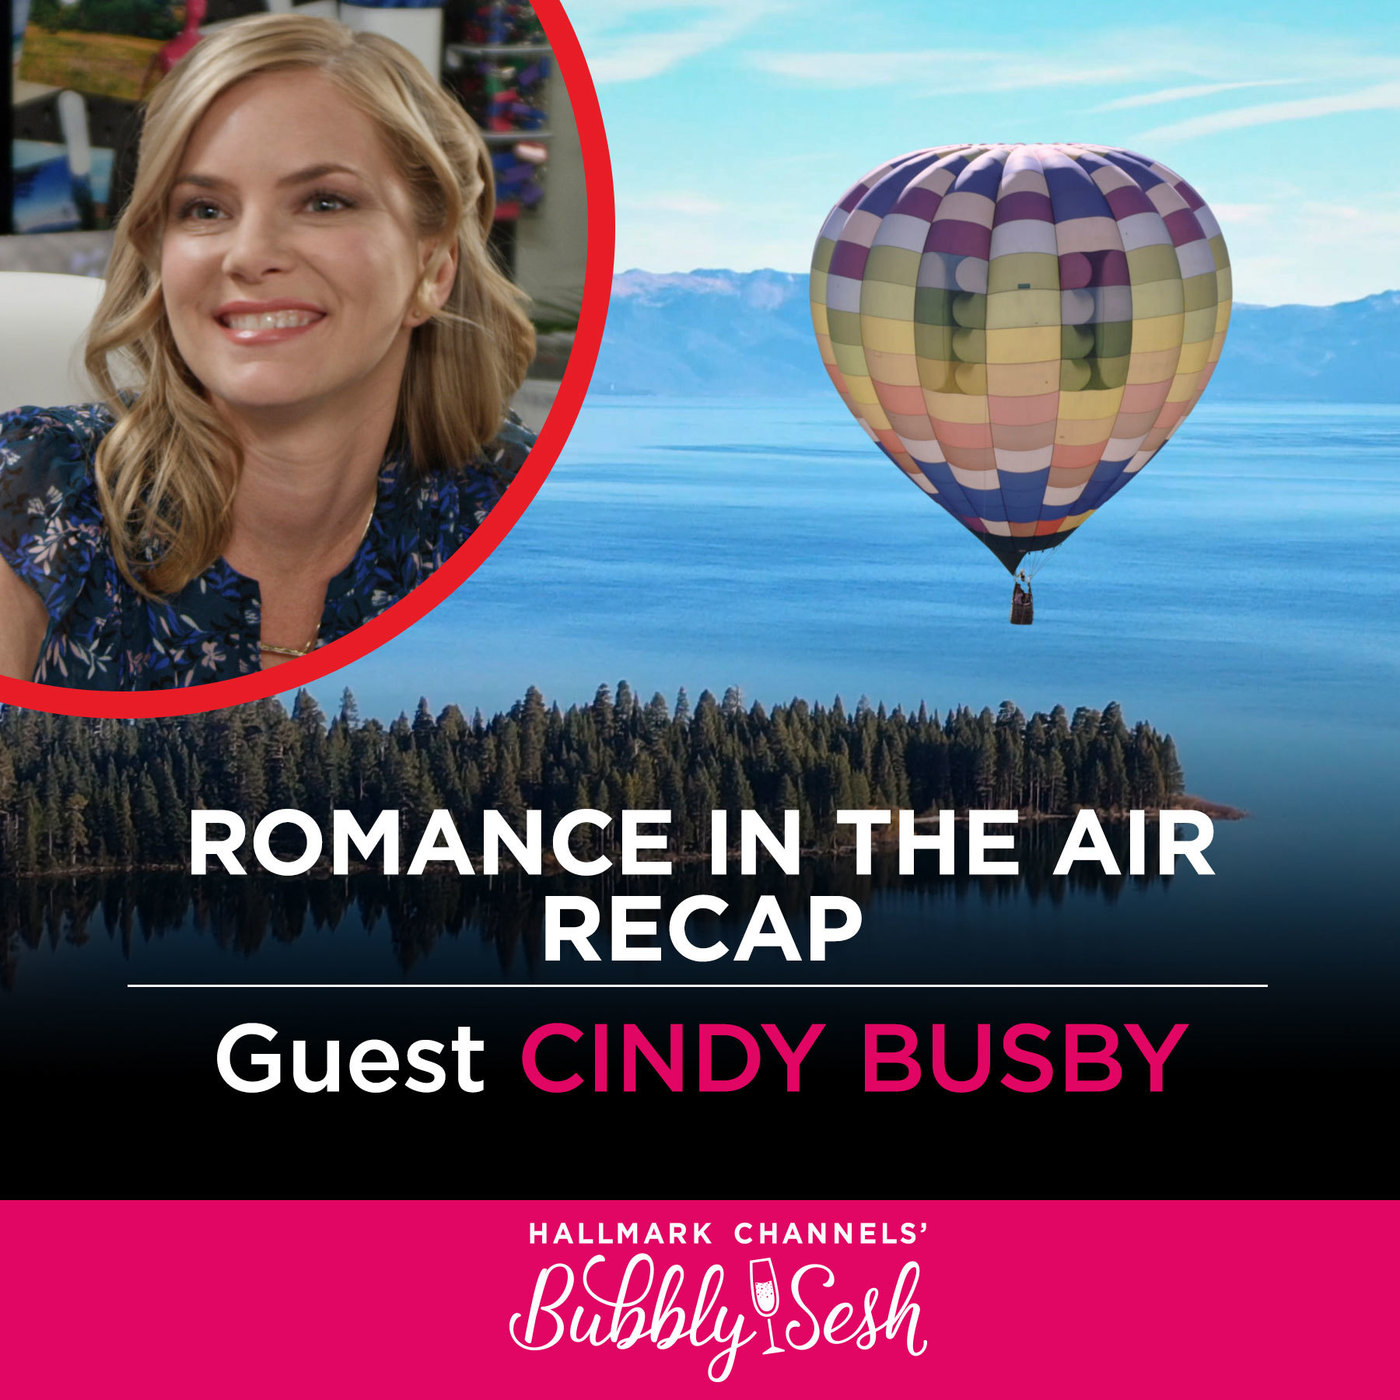 Romance in the Air Recap with Guest Cindy Busby